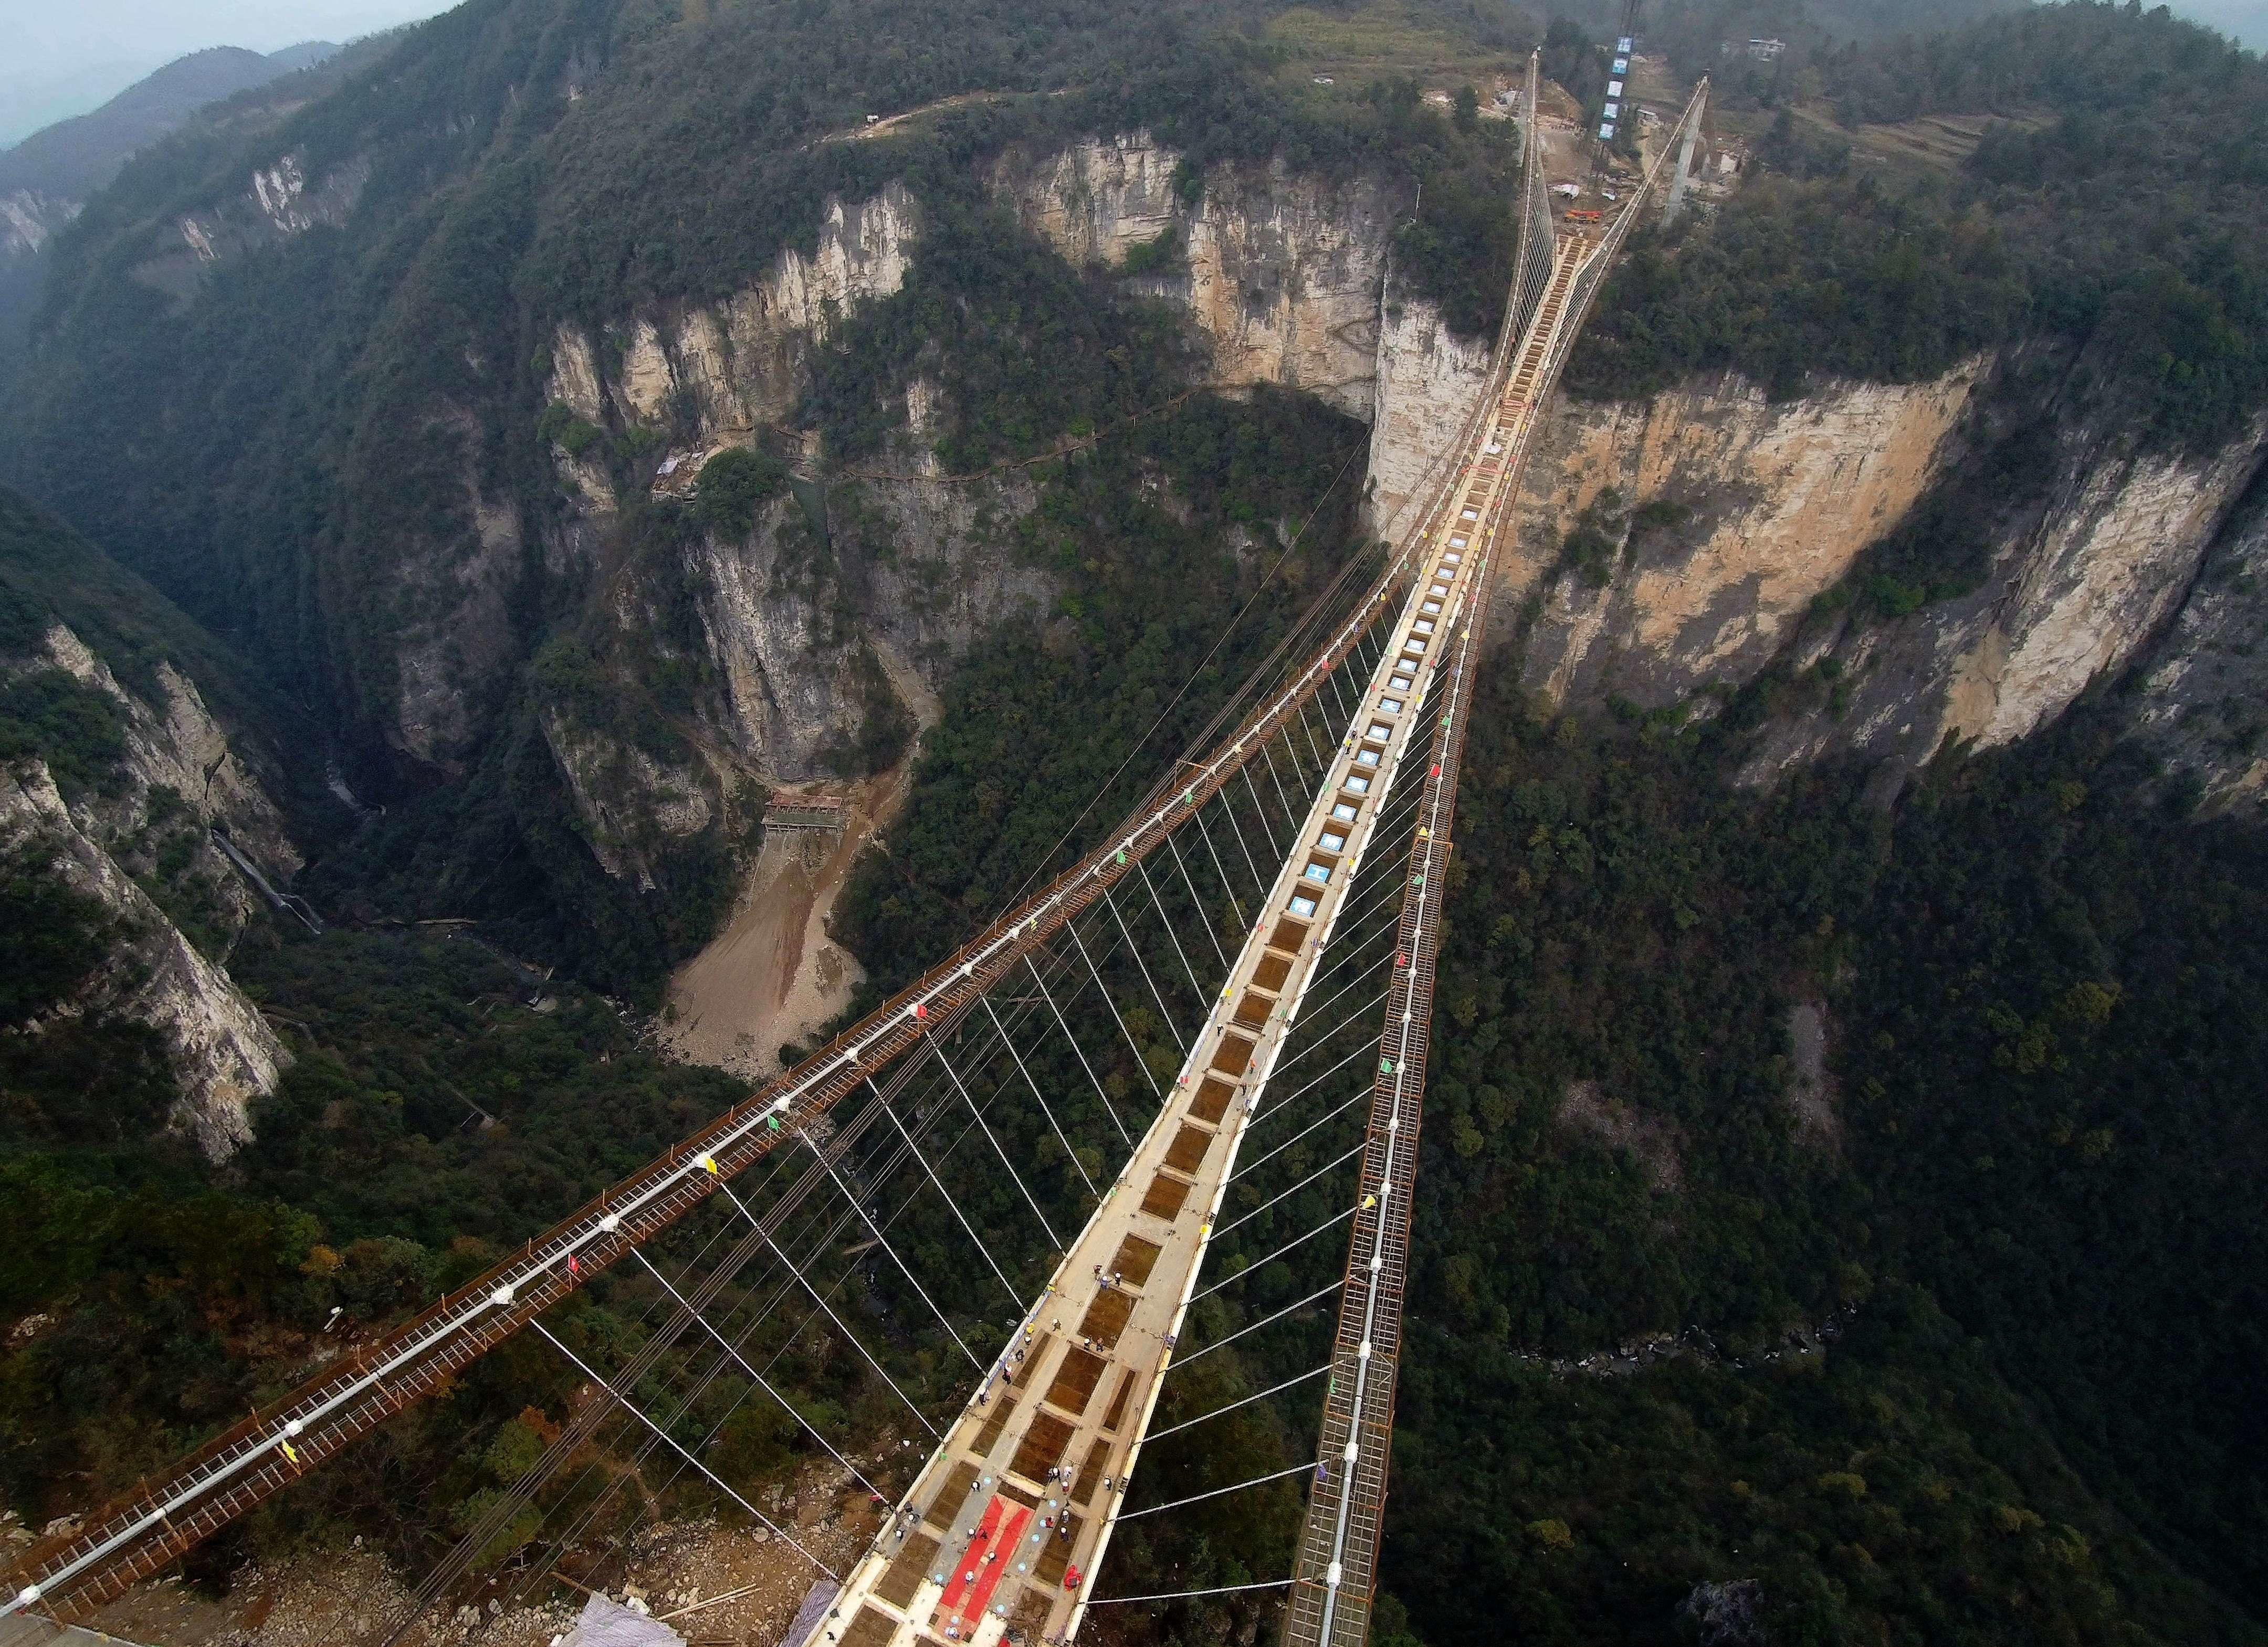 Terrifying Glass-Bottomed Bridge